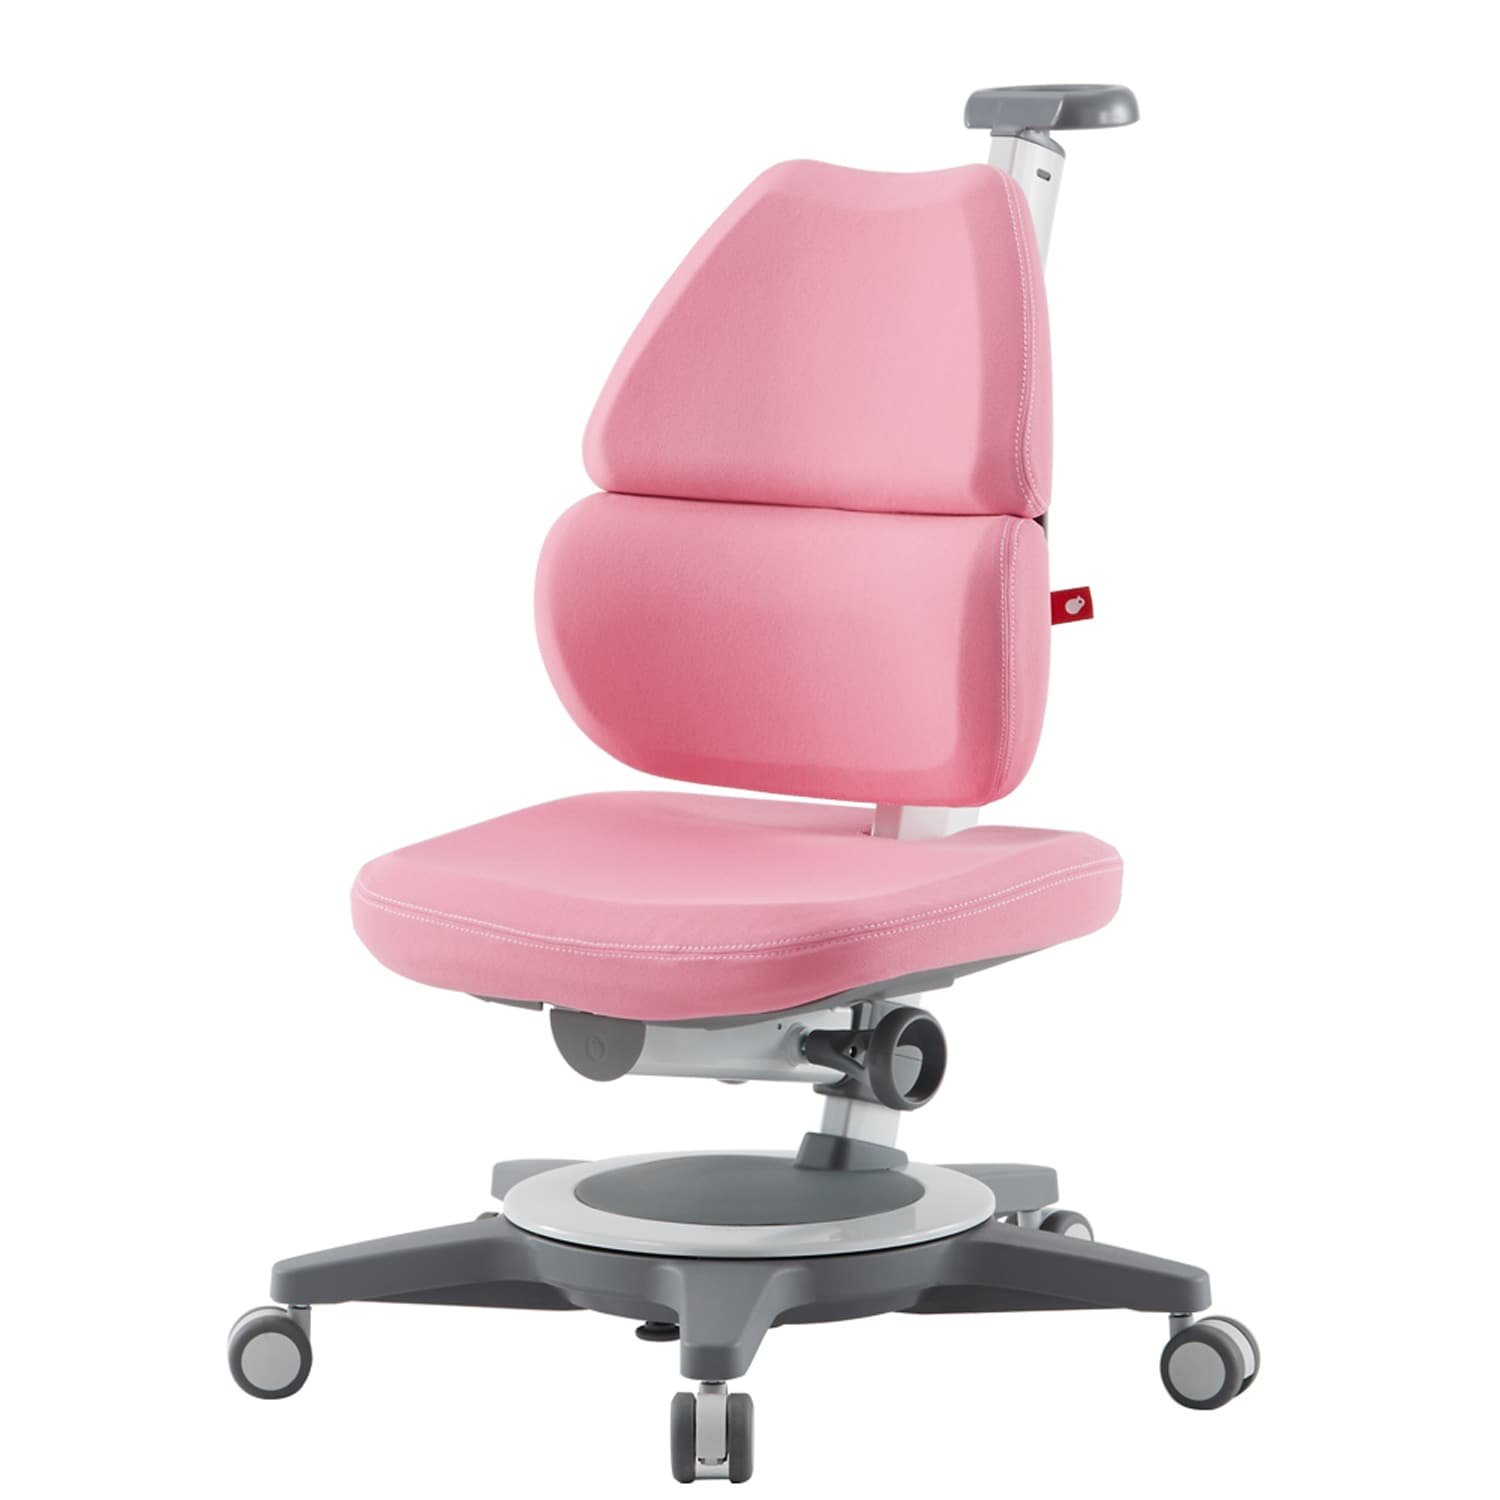 TCT Nanotec/Kids 2 Youth Kid 2 Youth Kid's Ergonomic Desk Chair Pink Pink Finish